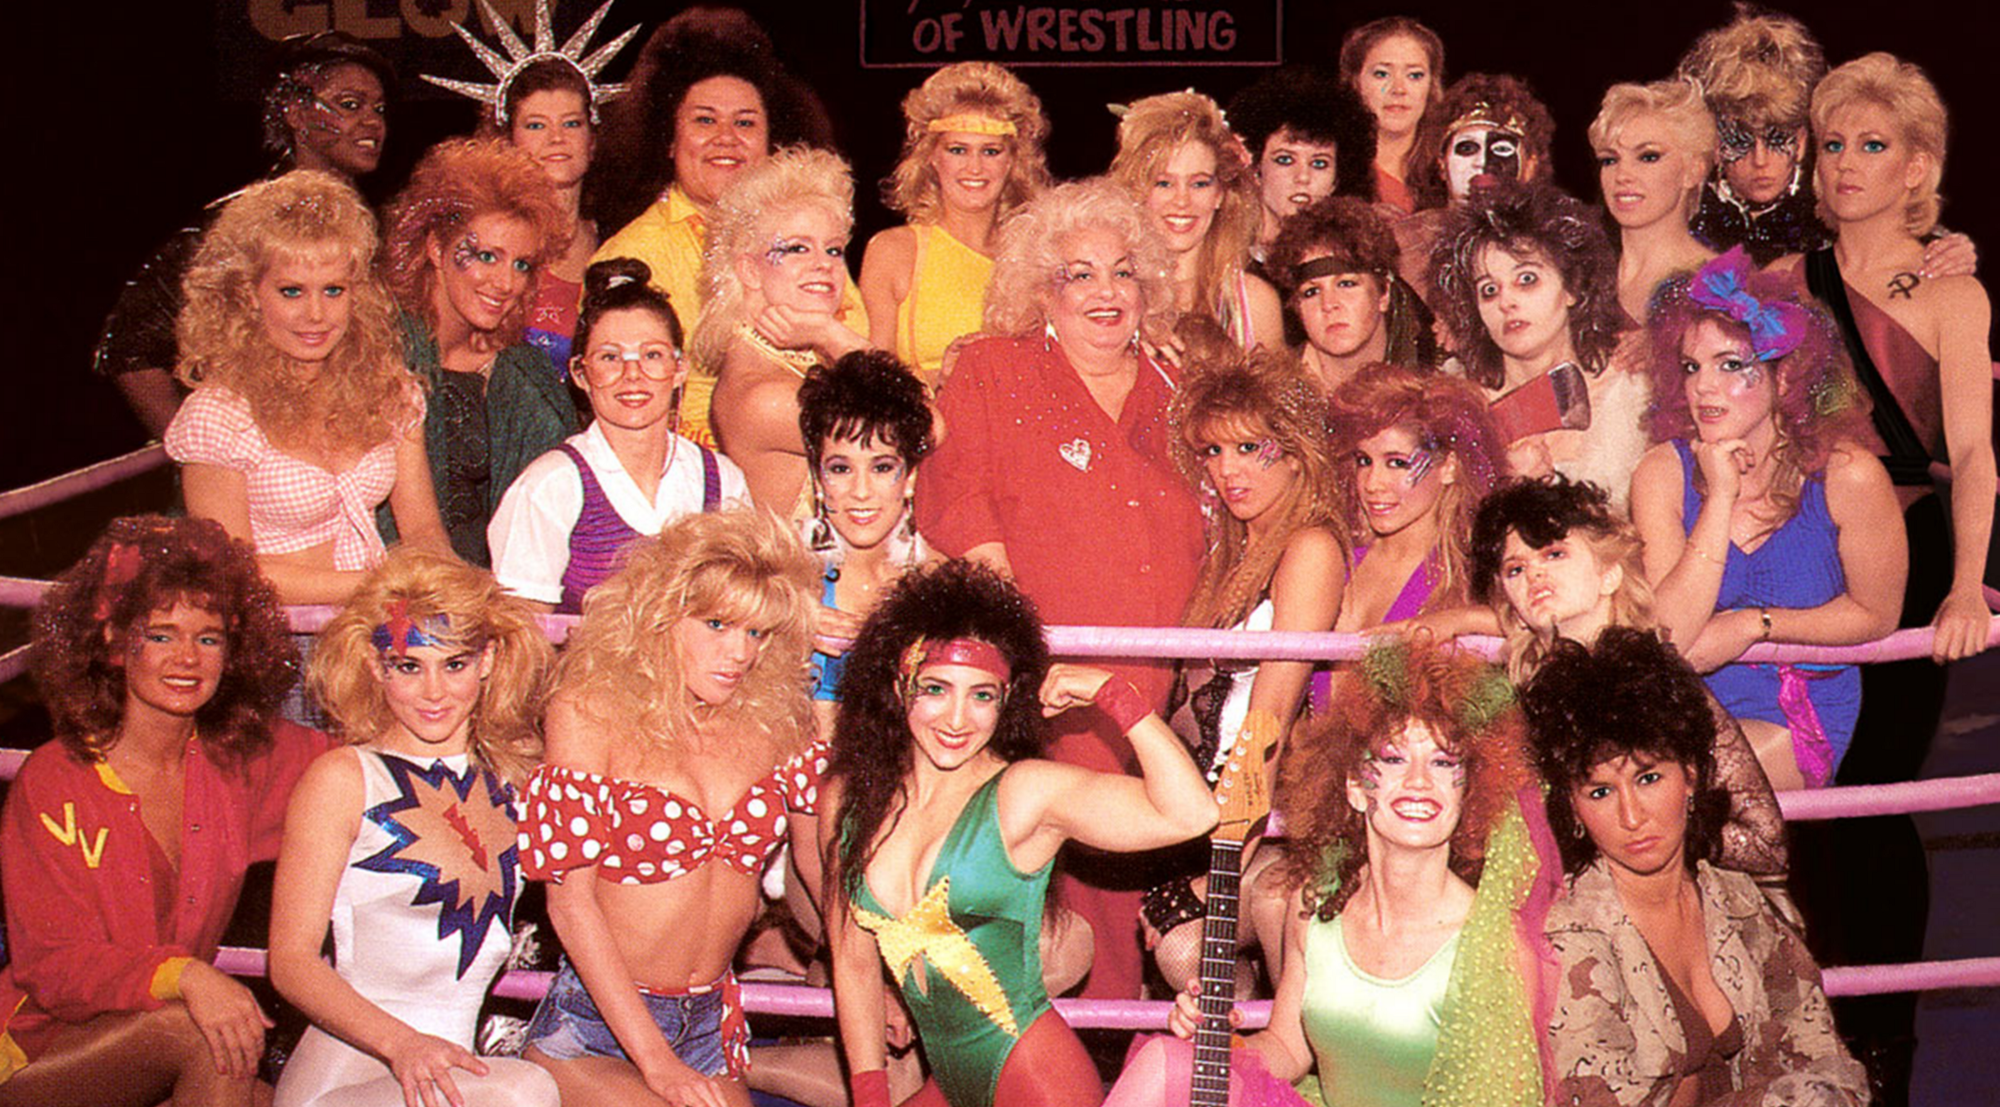 1980s watch: the raunchy appeal of glow, the all-female wrestling show